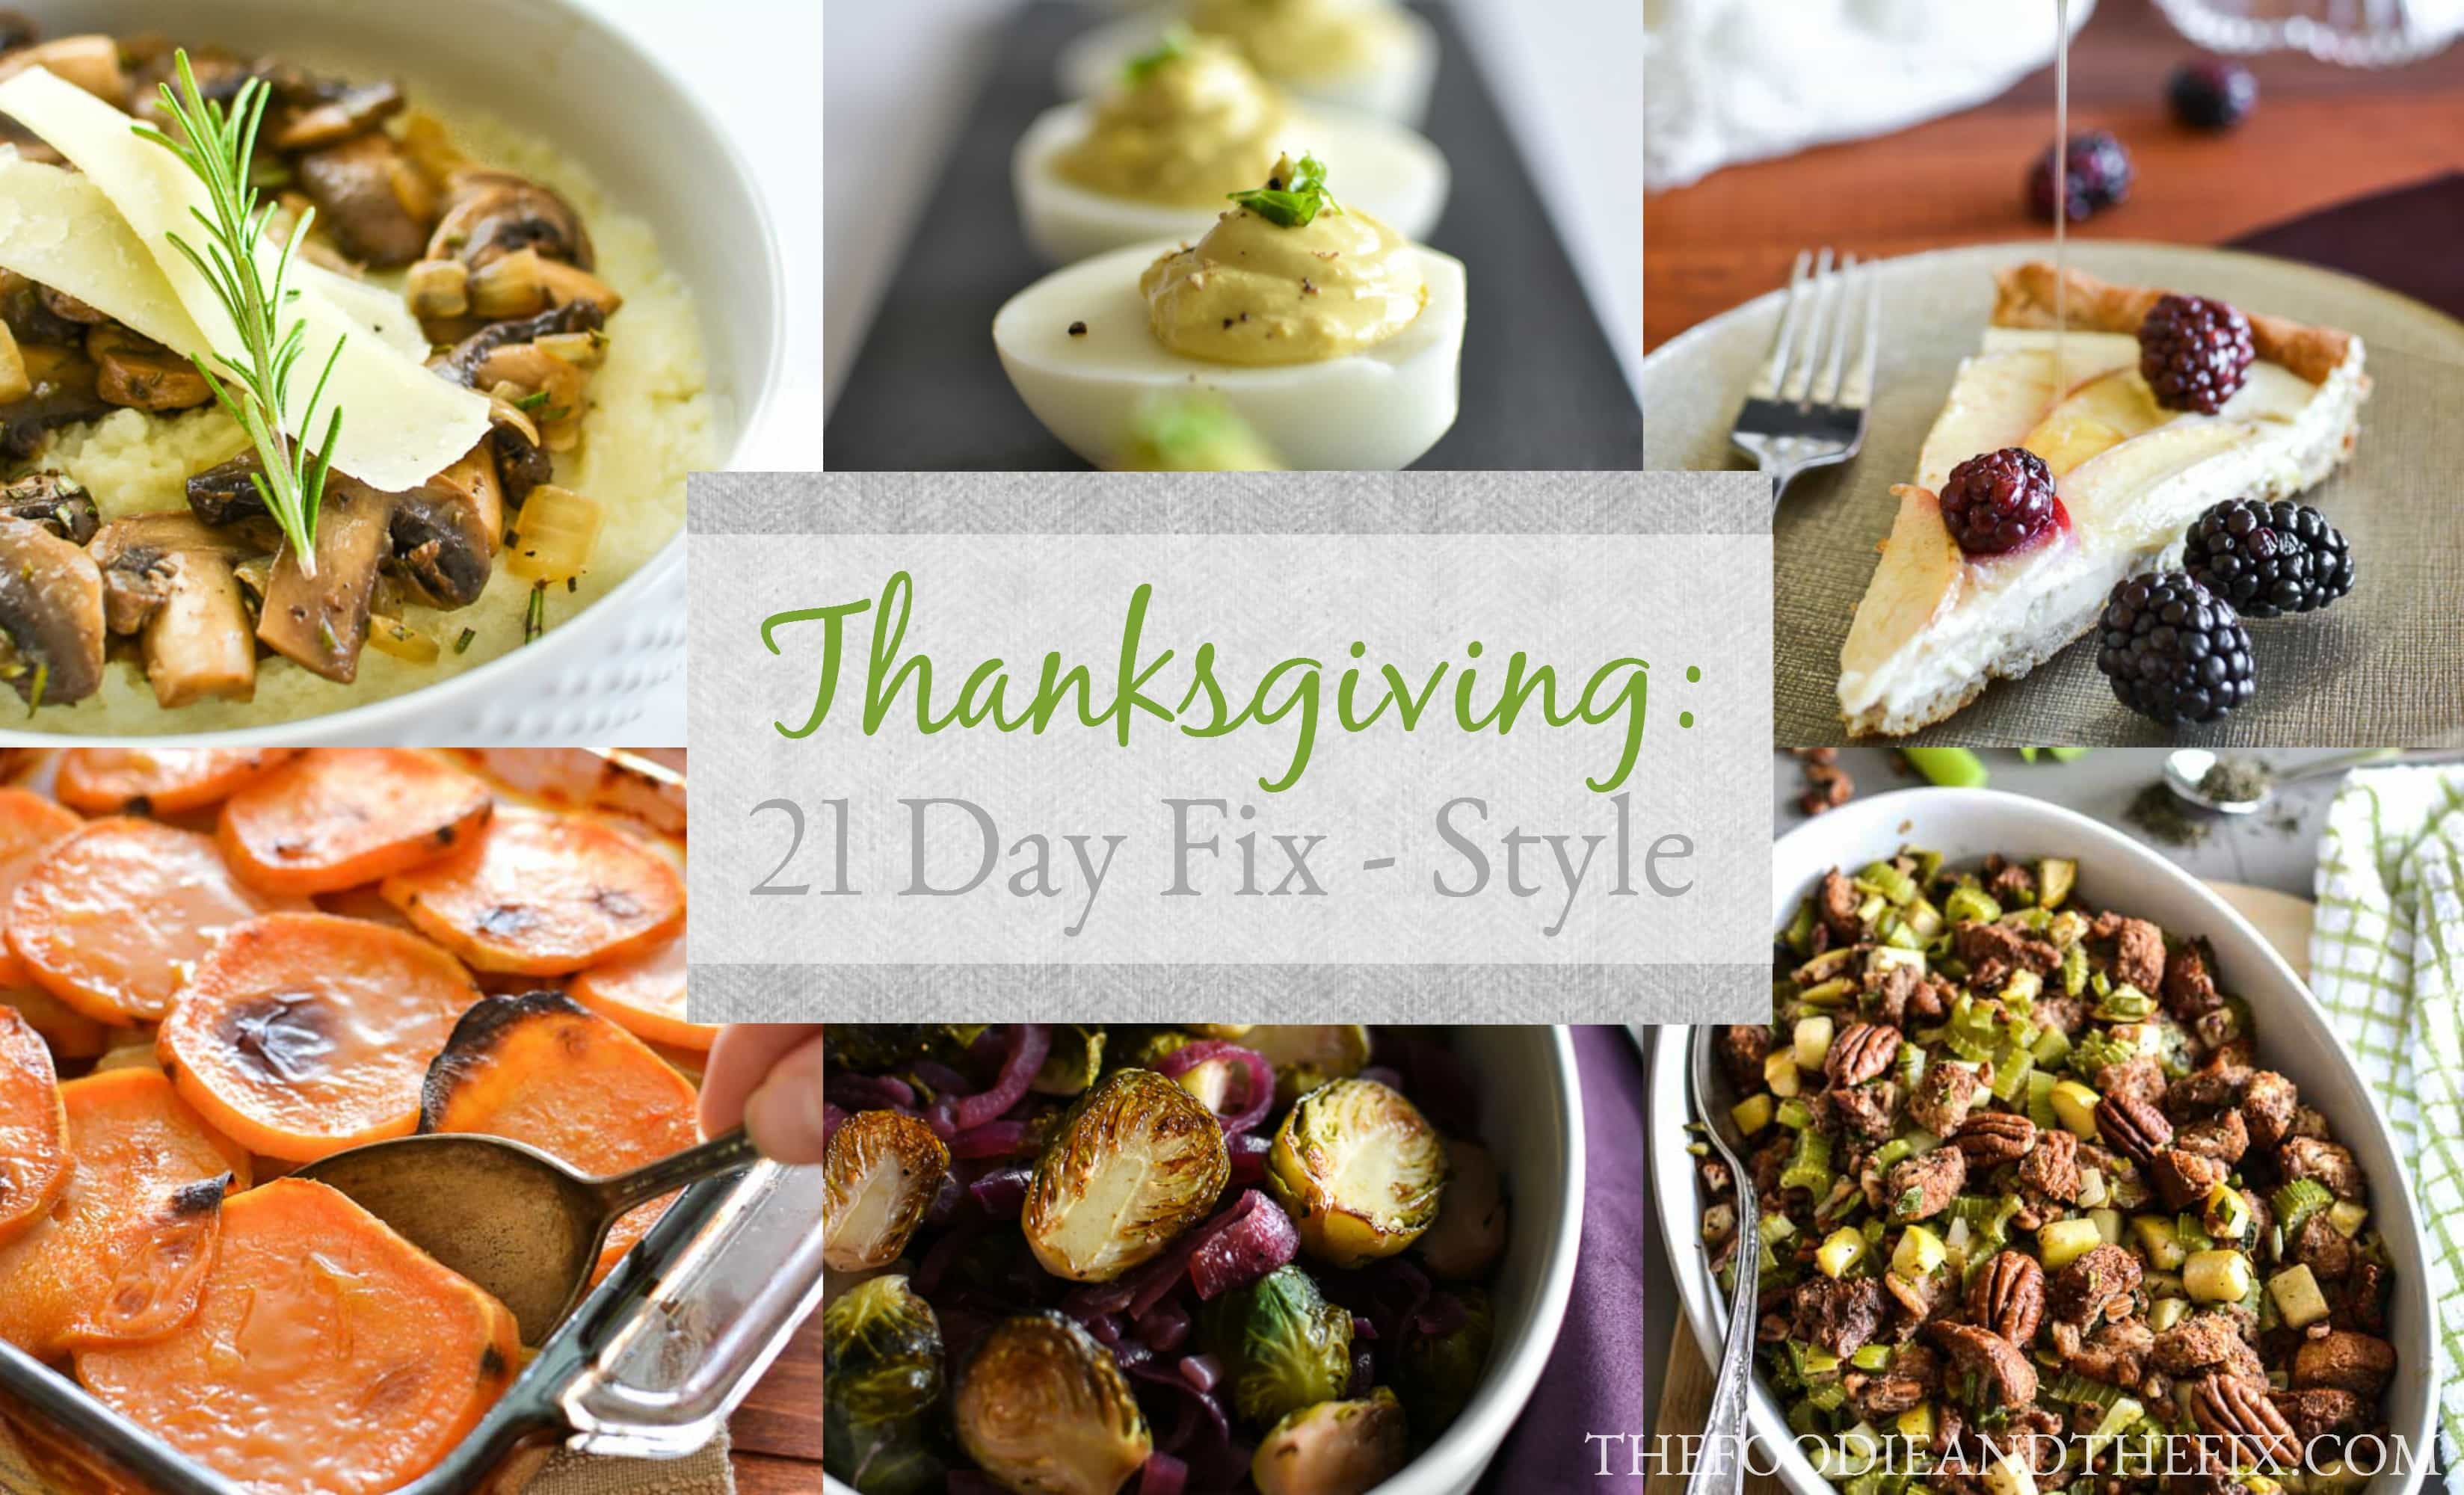 21 Day Fix Thanksgiving